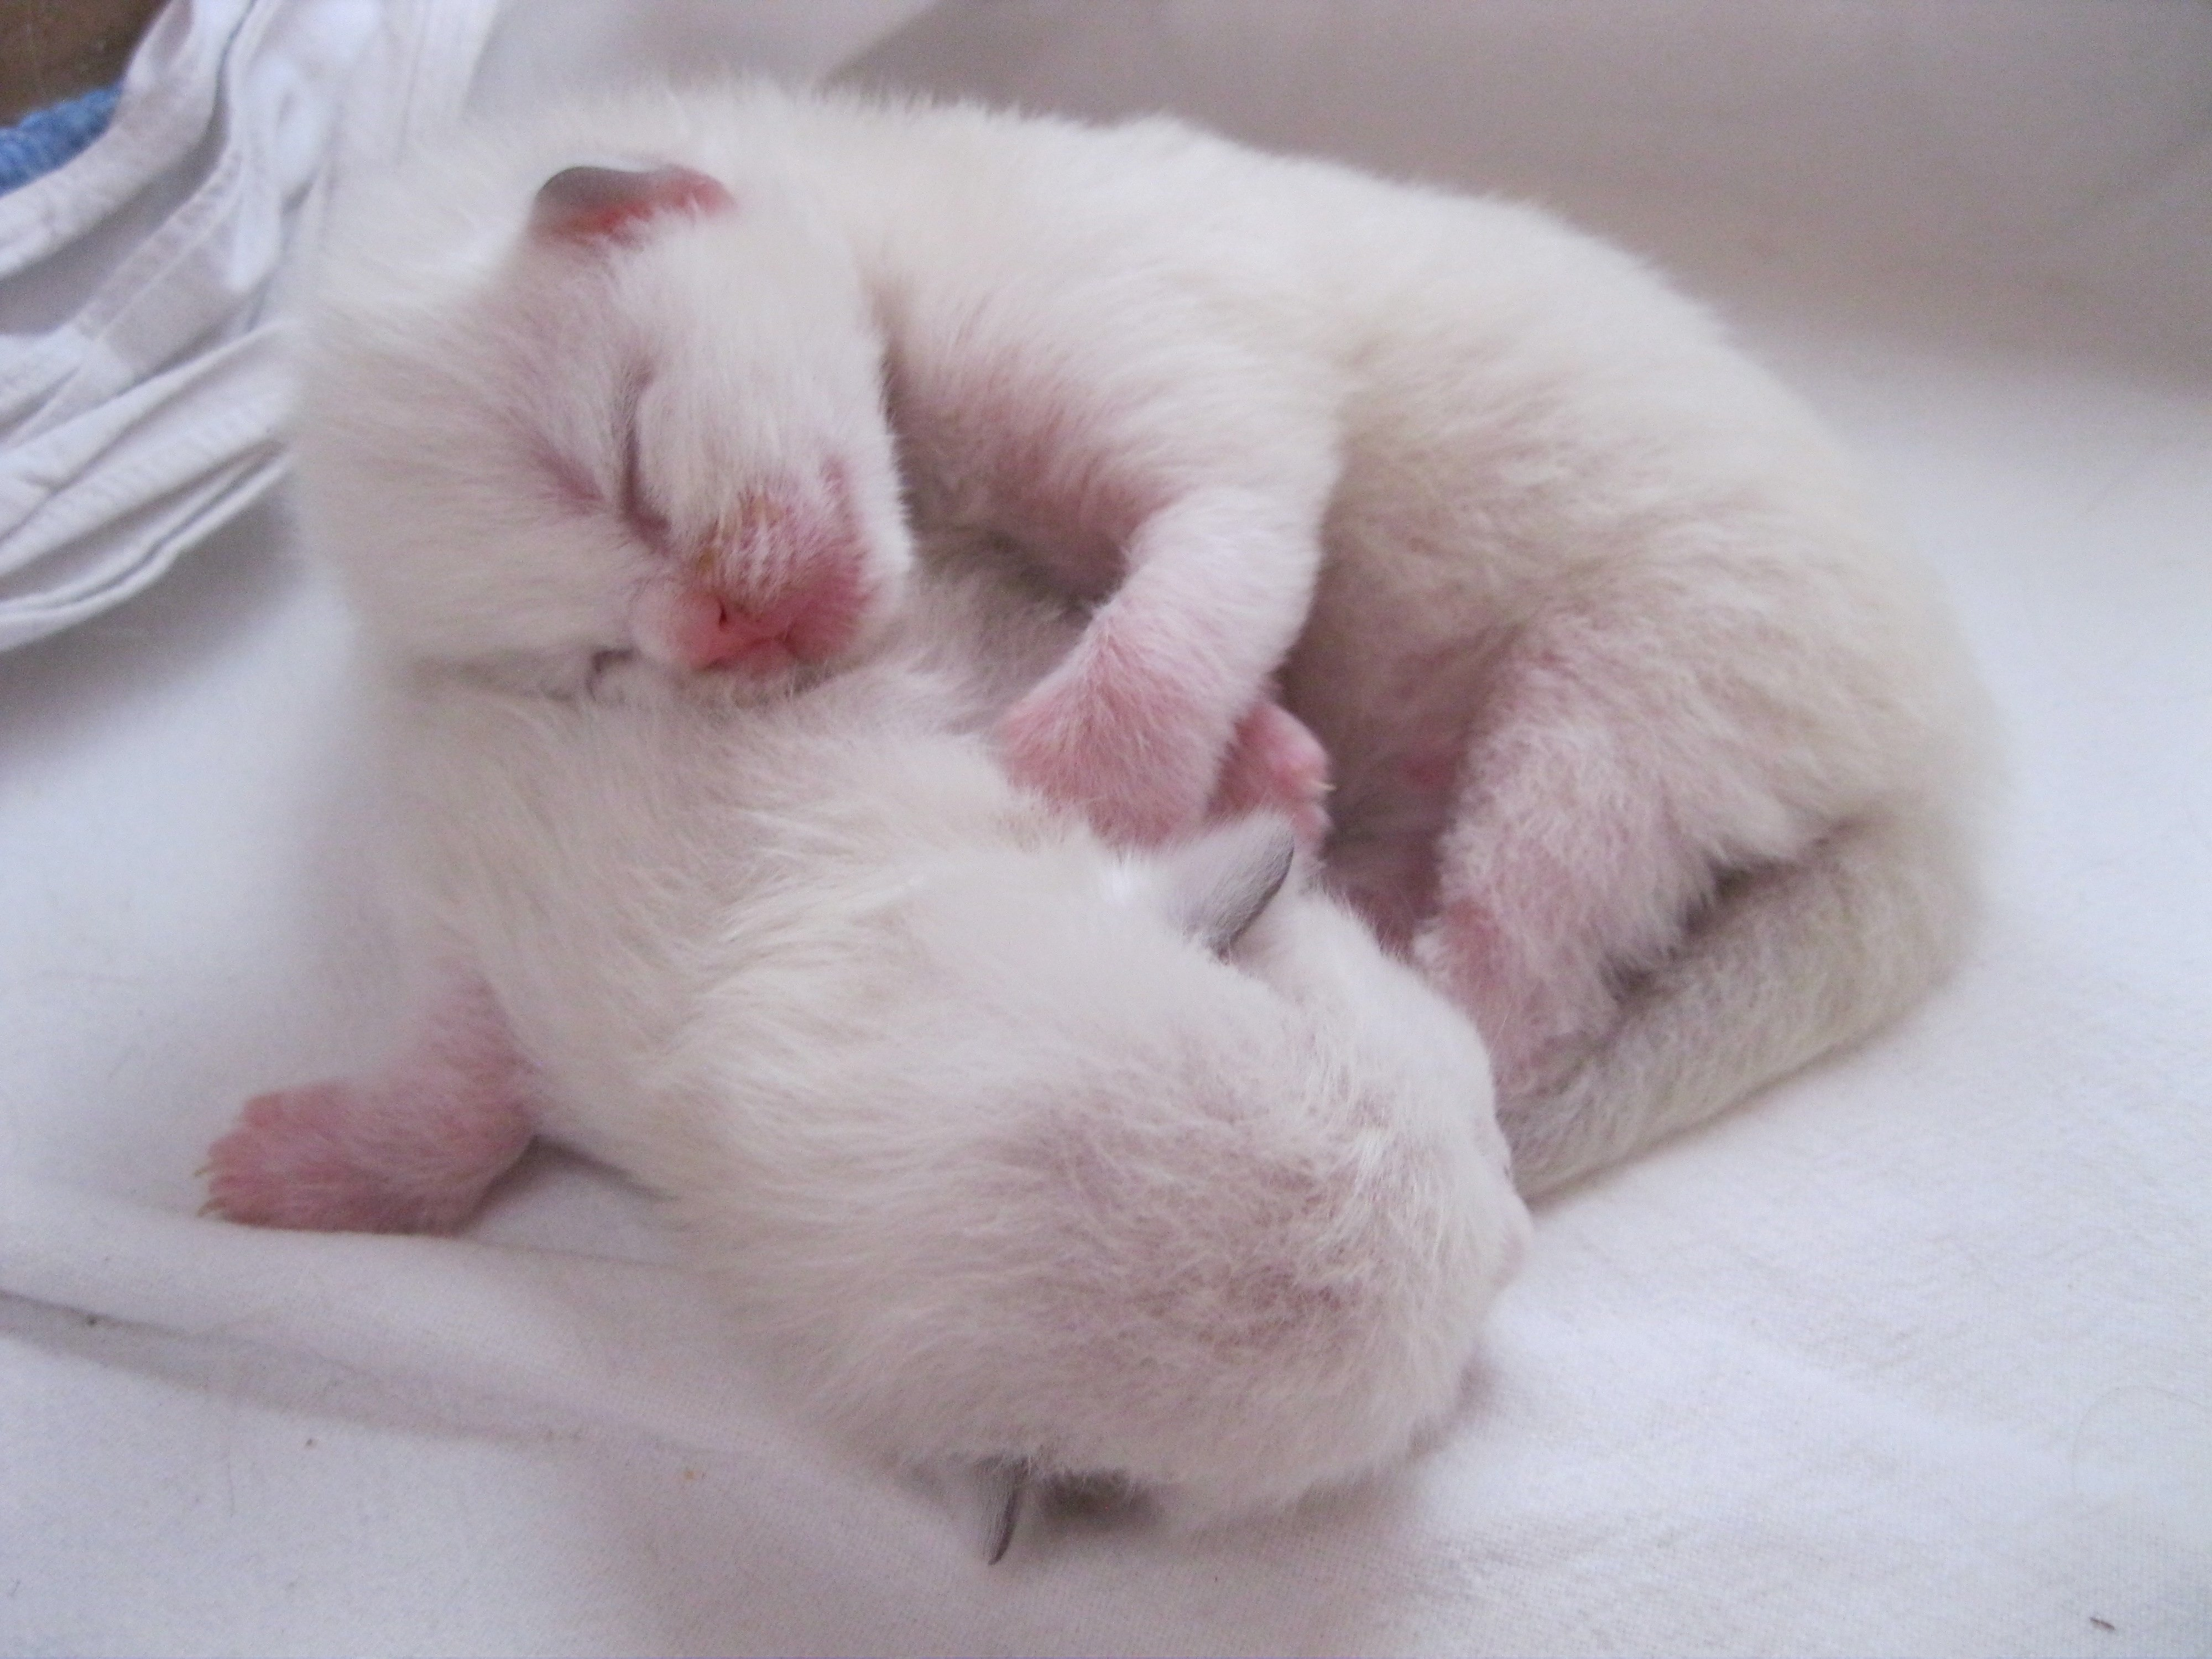 6 days old